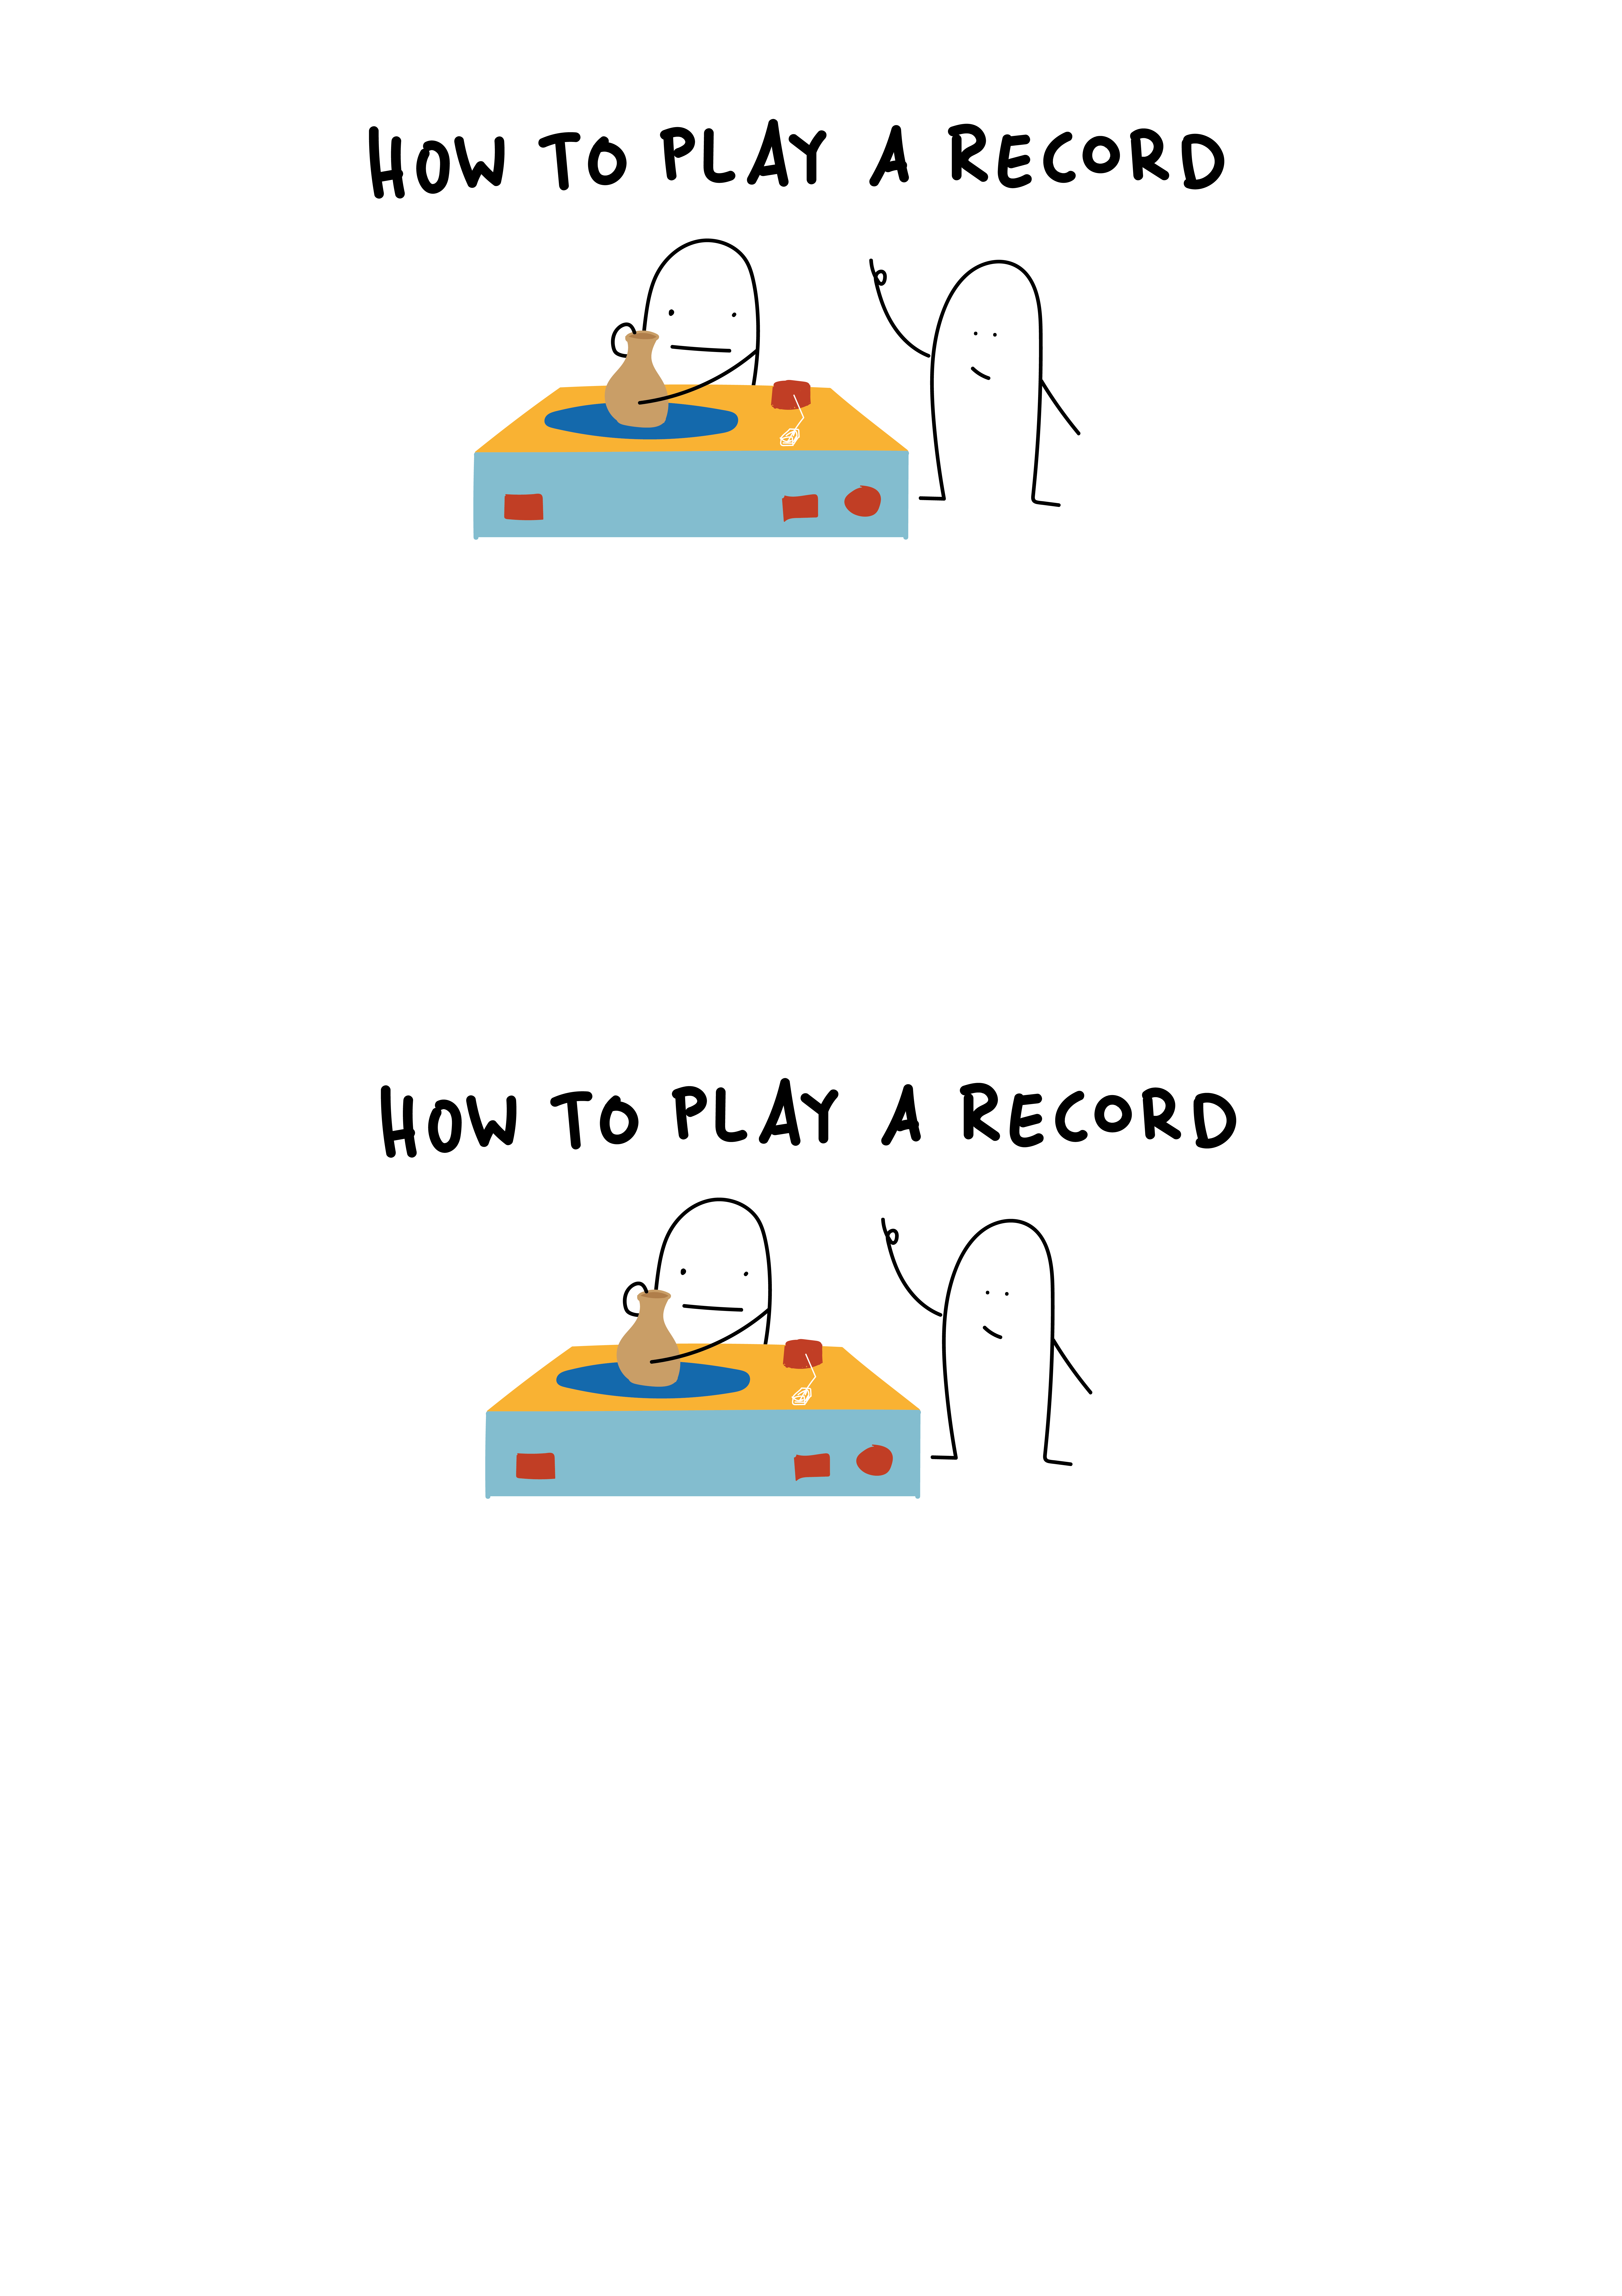 How to play a record